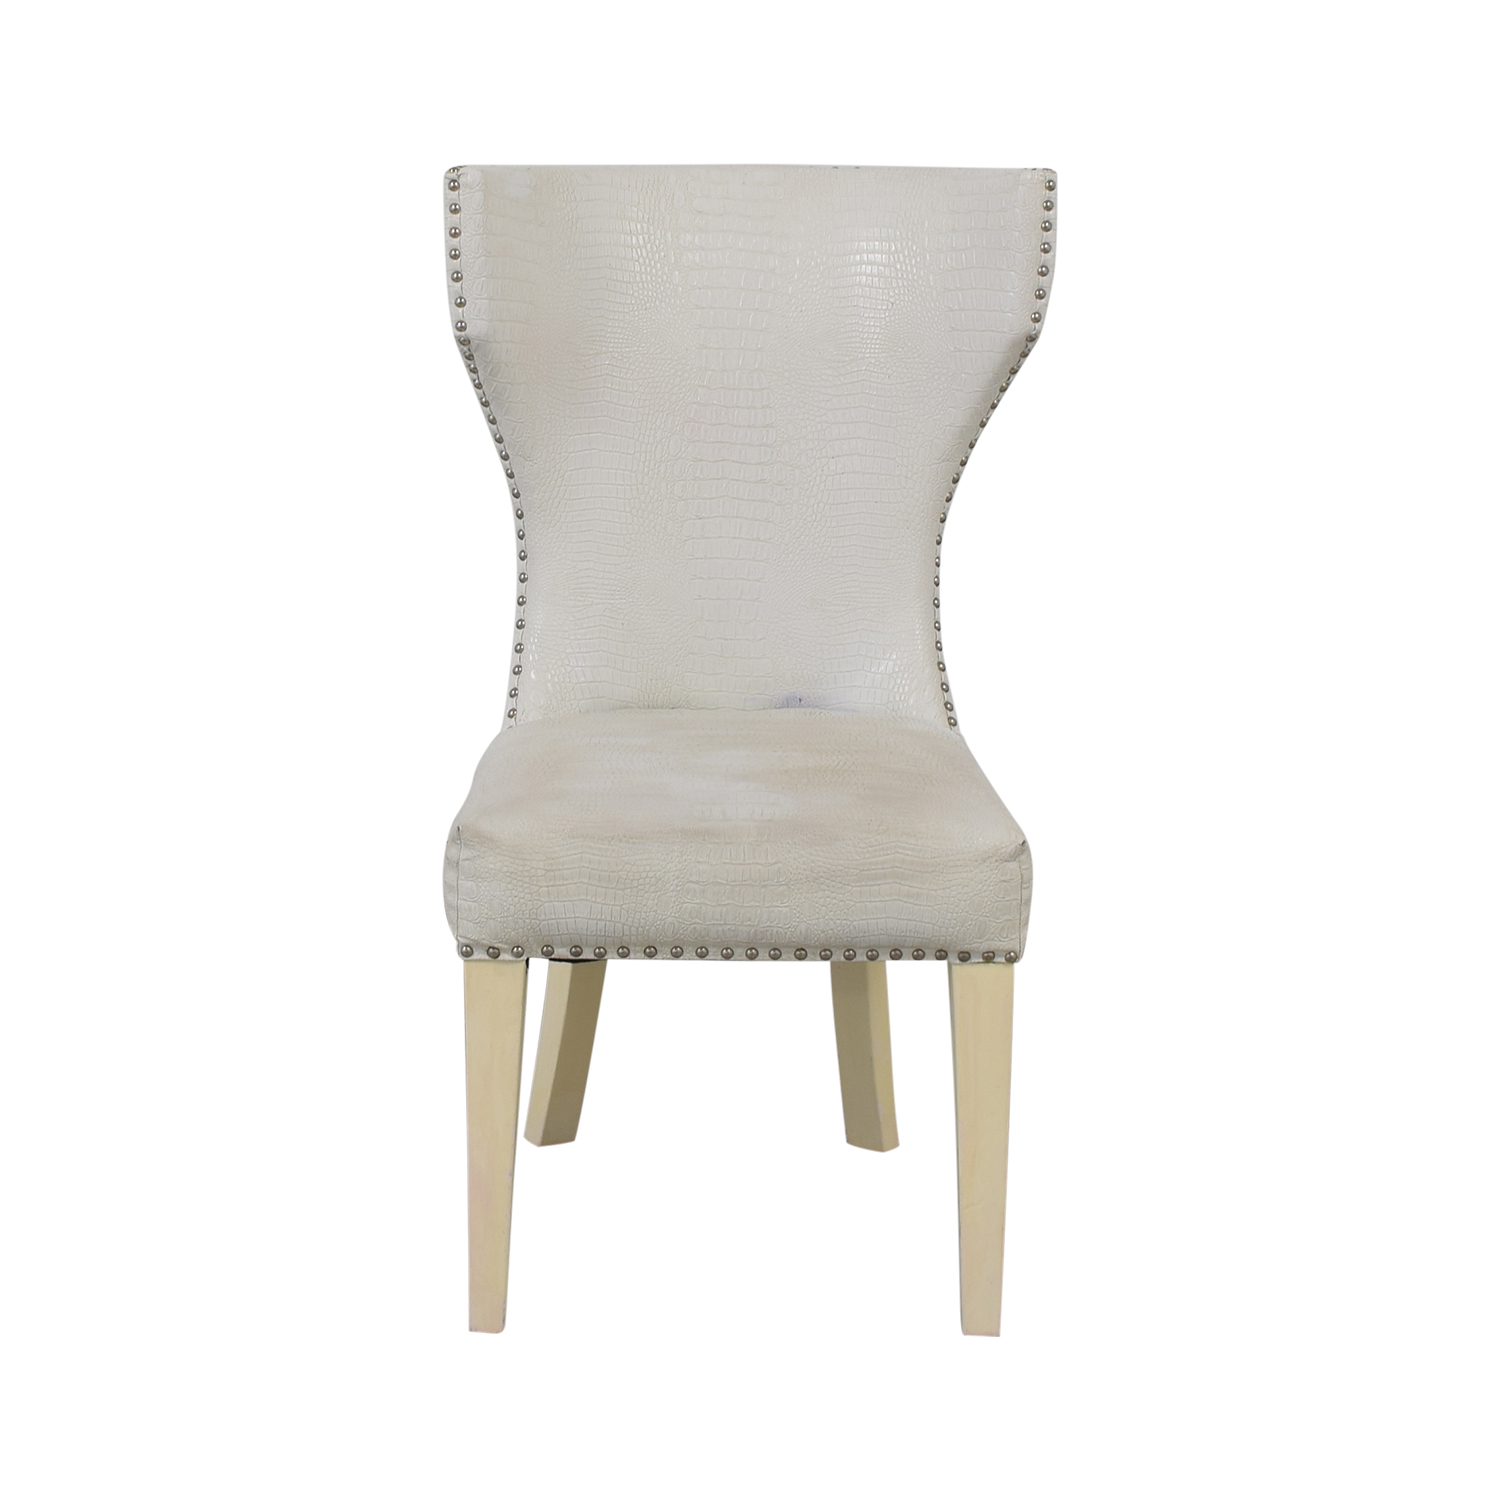 shop Shine by S.H.O Shine by S.H.O. Verona Chair online